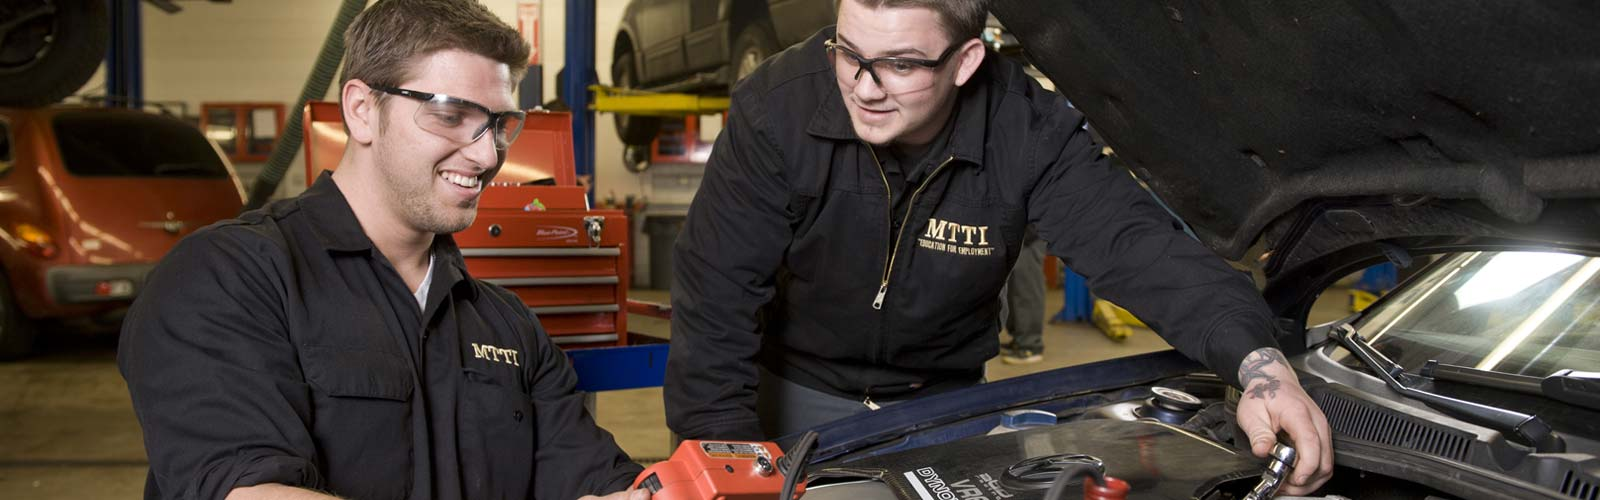 MTTI students working on a car